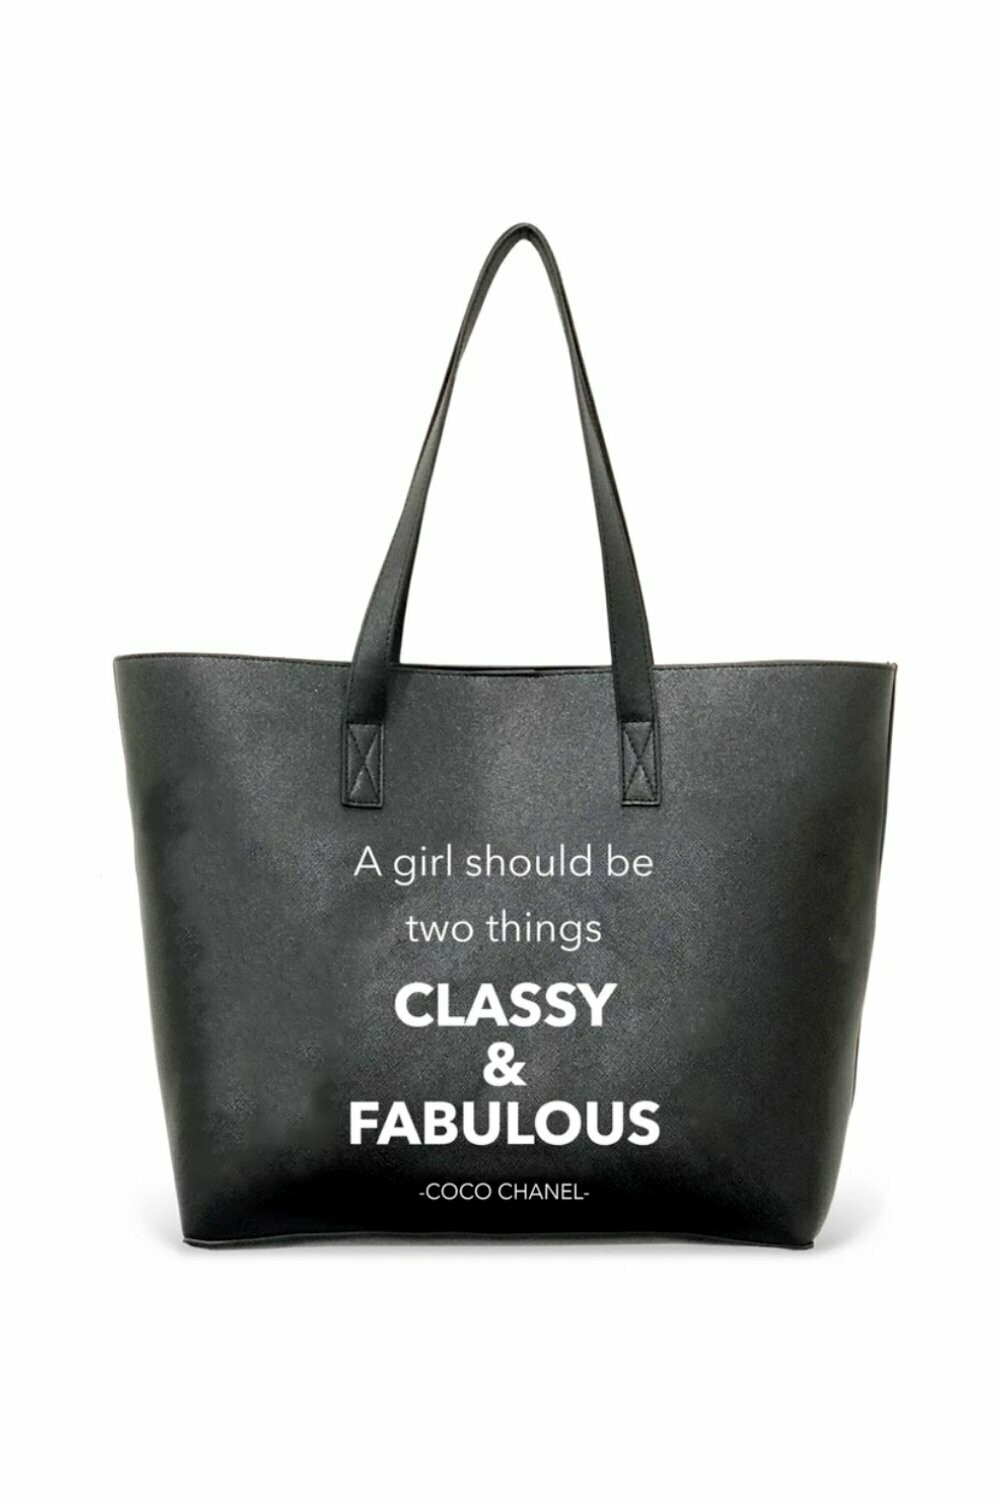 LA Trading Co. Vegan Leather Tote - Classy & Fabulous